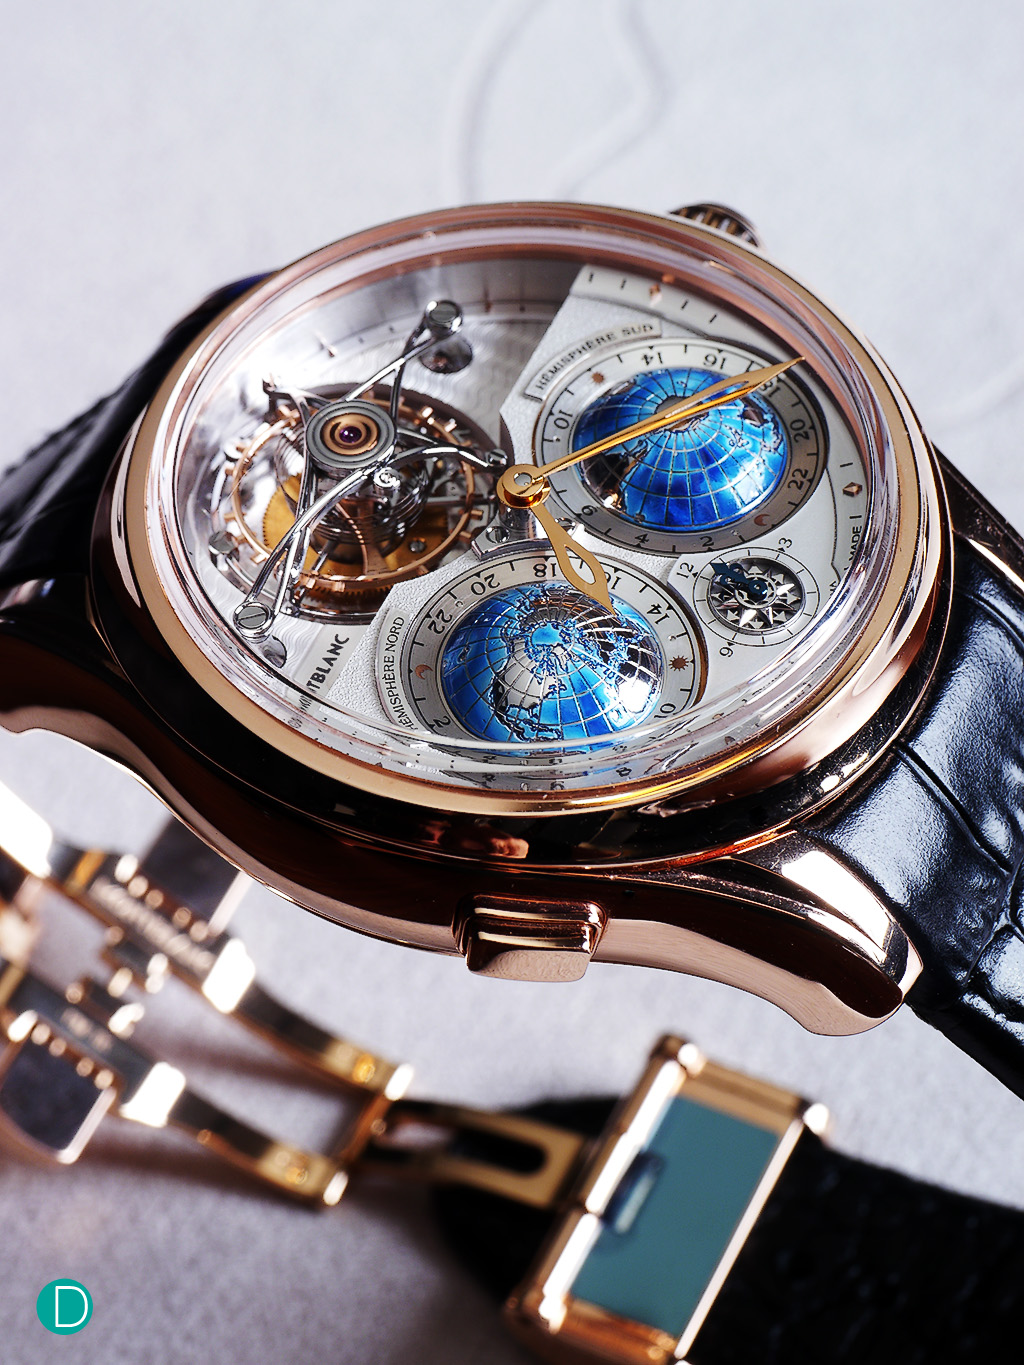 Montblanc Collection Villeret Tourbillon Cylindrique Geosphères Vasco da Gama.